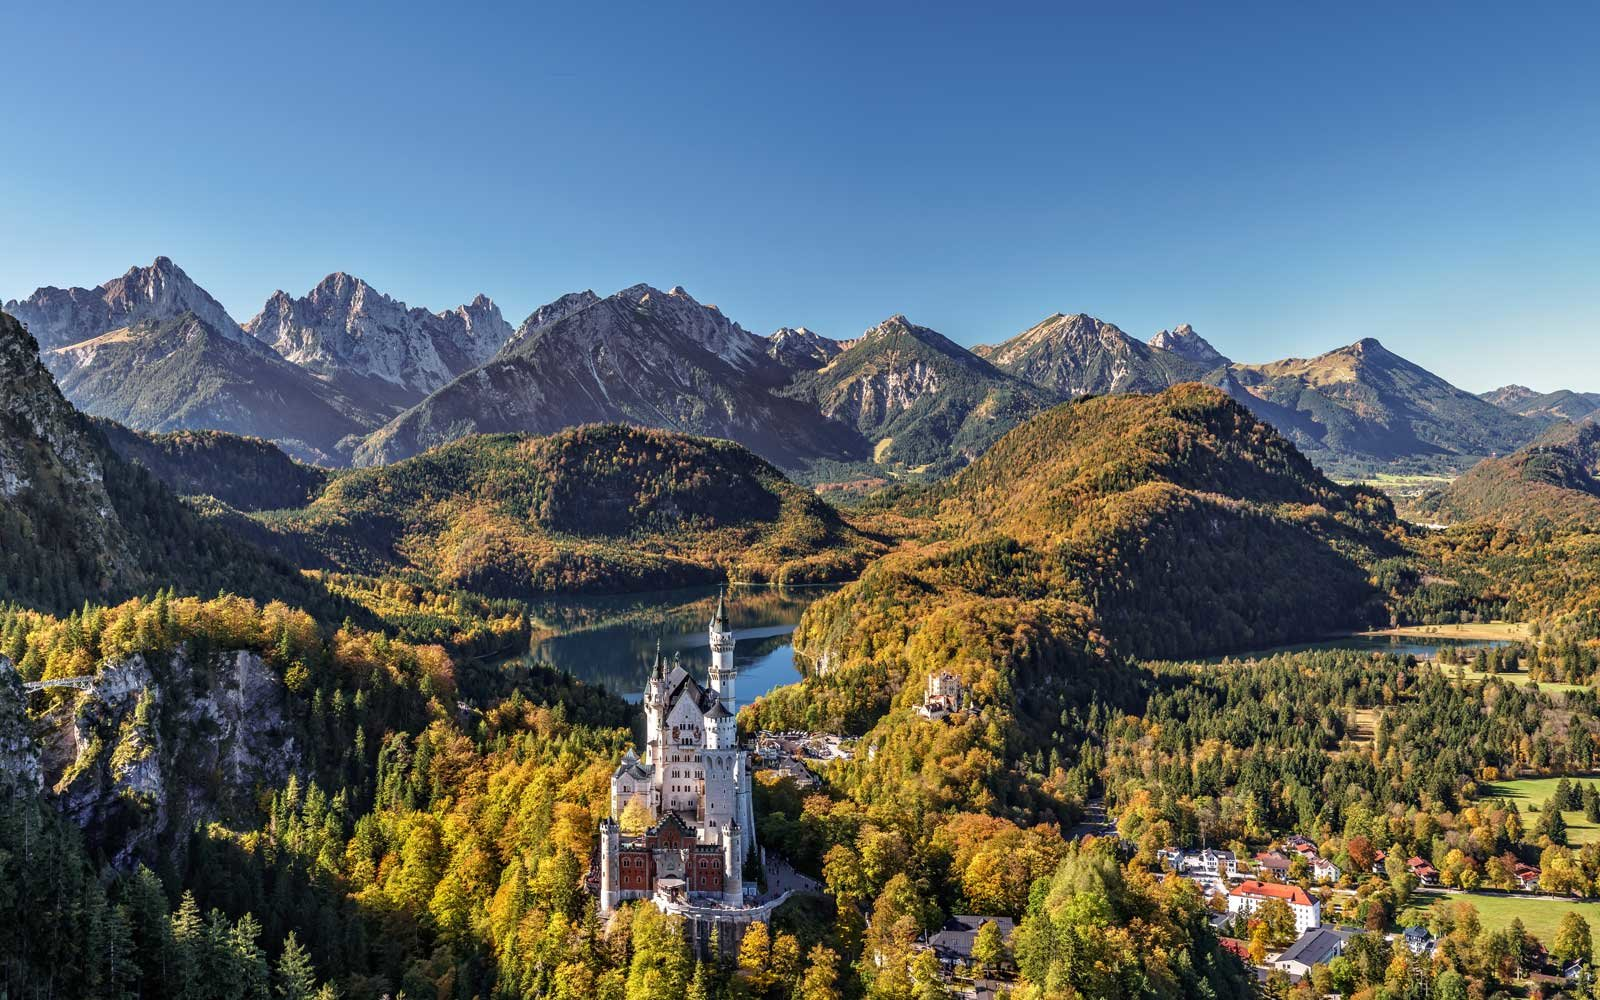 Where is Neuschwanstein Castle